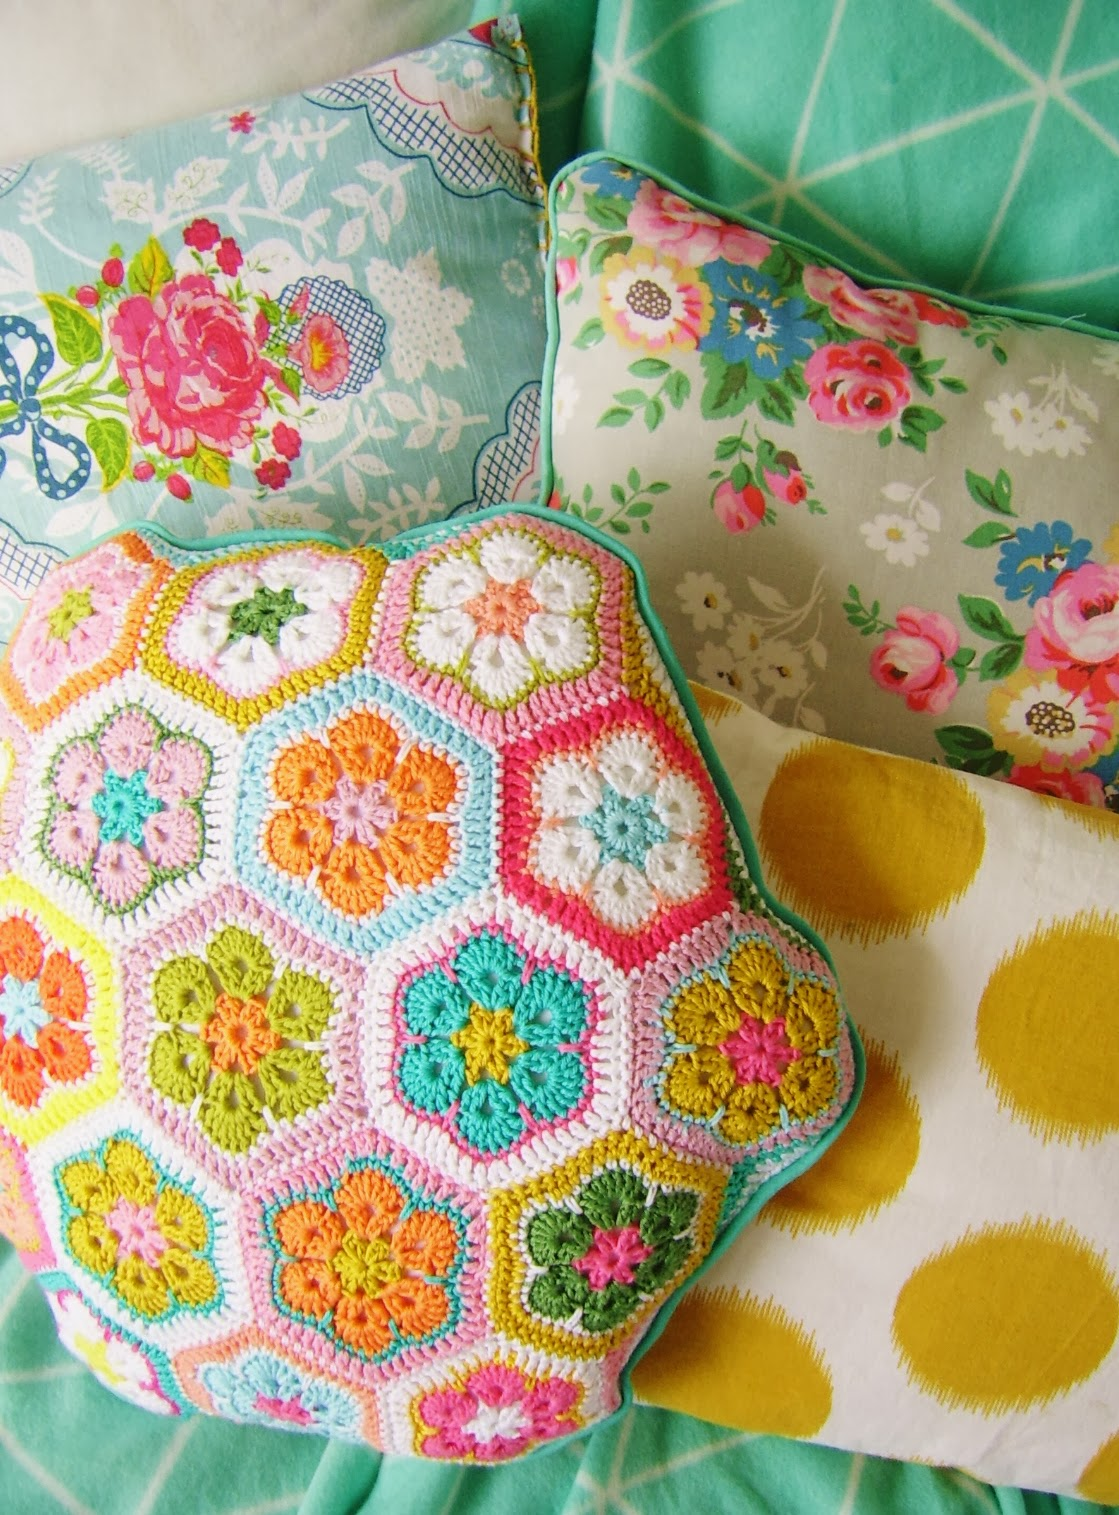 27 Crochet Projects That Are Going To Make You Want To Learn How To Crochet: African Hexigon Granny Square Pillow Crochet Pattern from Silly Old Suitcase